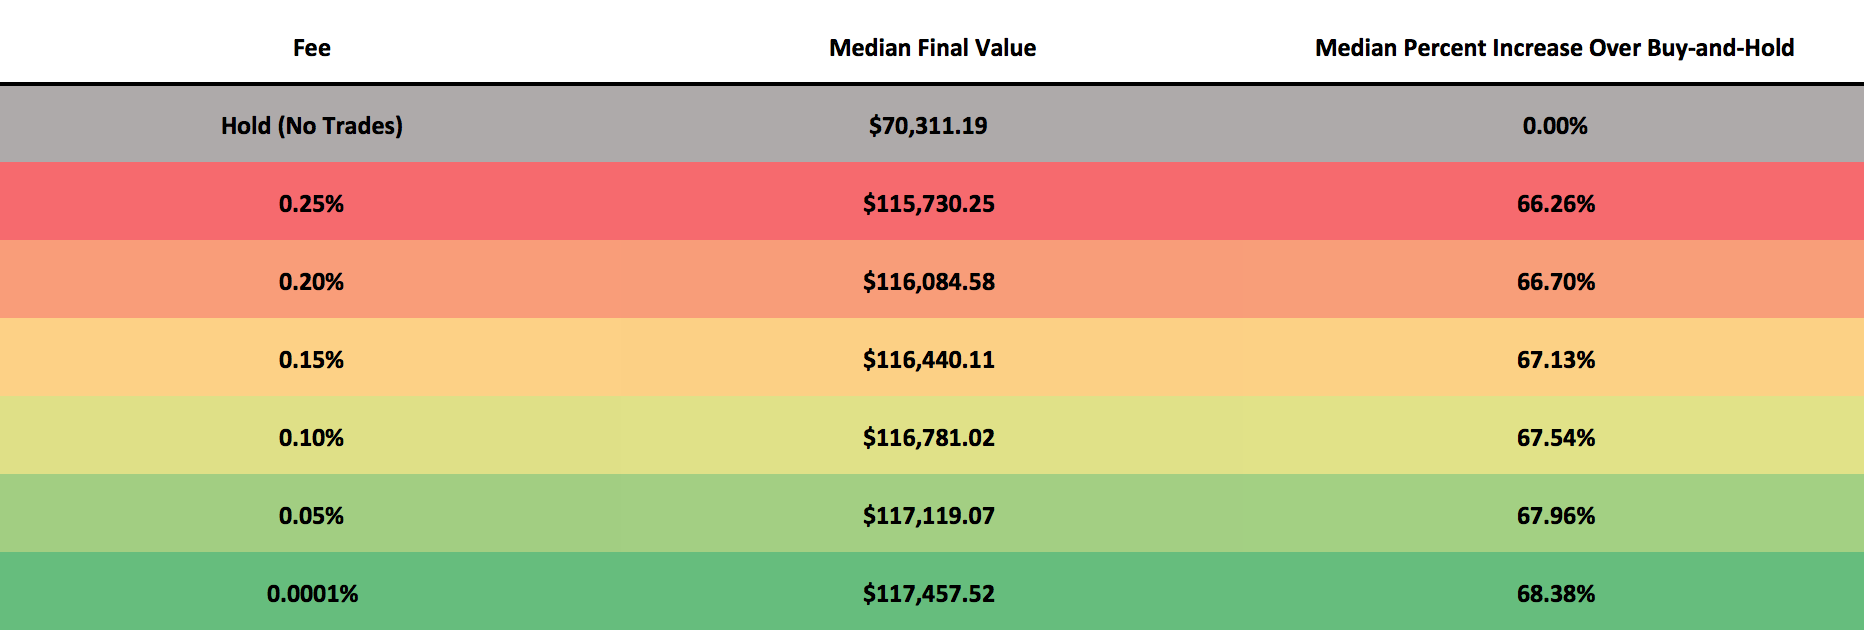 This table illustrates the median performance of 1,000 backtests which were run with each of the trading fees depicted above. The median final value is the value of the median portfolio after the backtest is complete. Each backtest is allocated $5,000 at the start, so a final value of $70,311.19 which was achieved for buy-and-hold suggests a median performance increase of 1,306%. The median percent increase over buy-and-hold is how much better the median final value performed than the median buy-and-hold value.